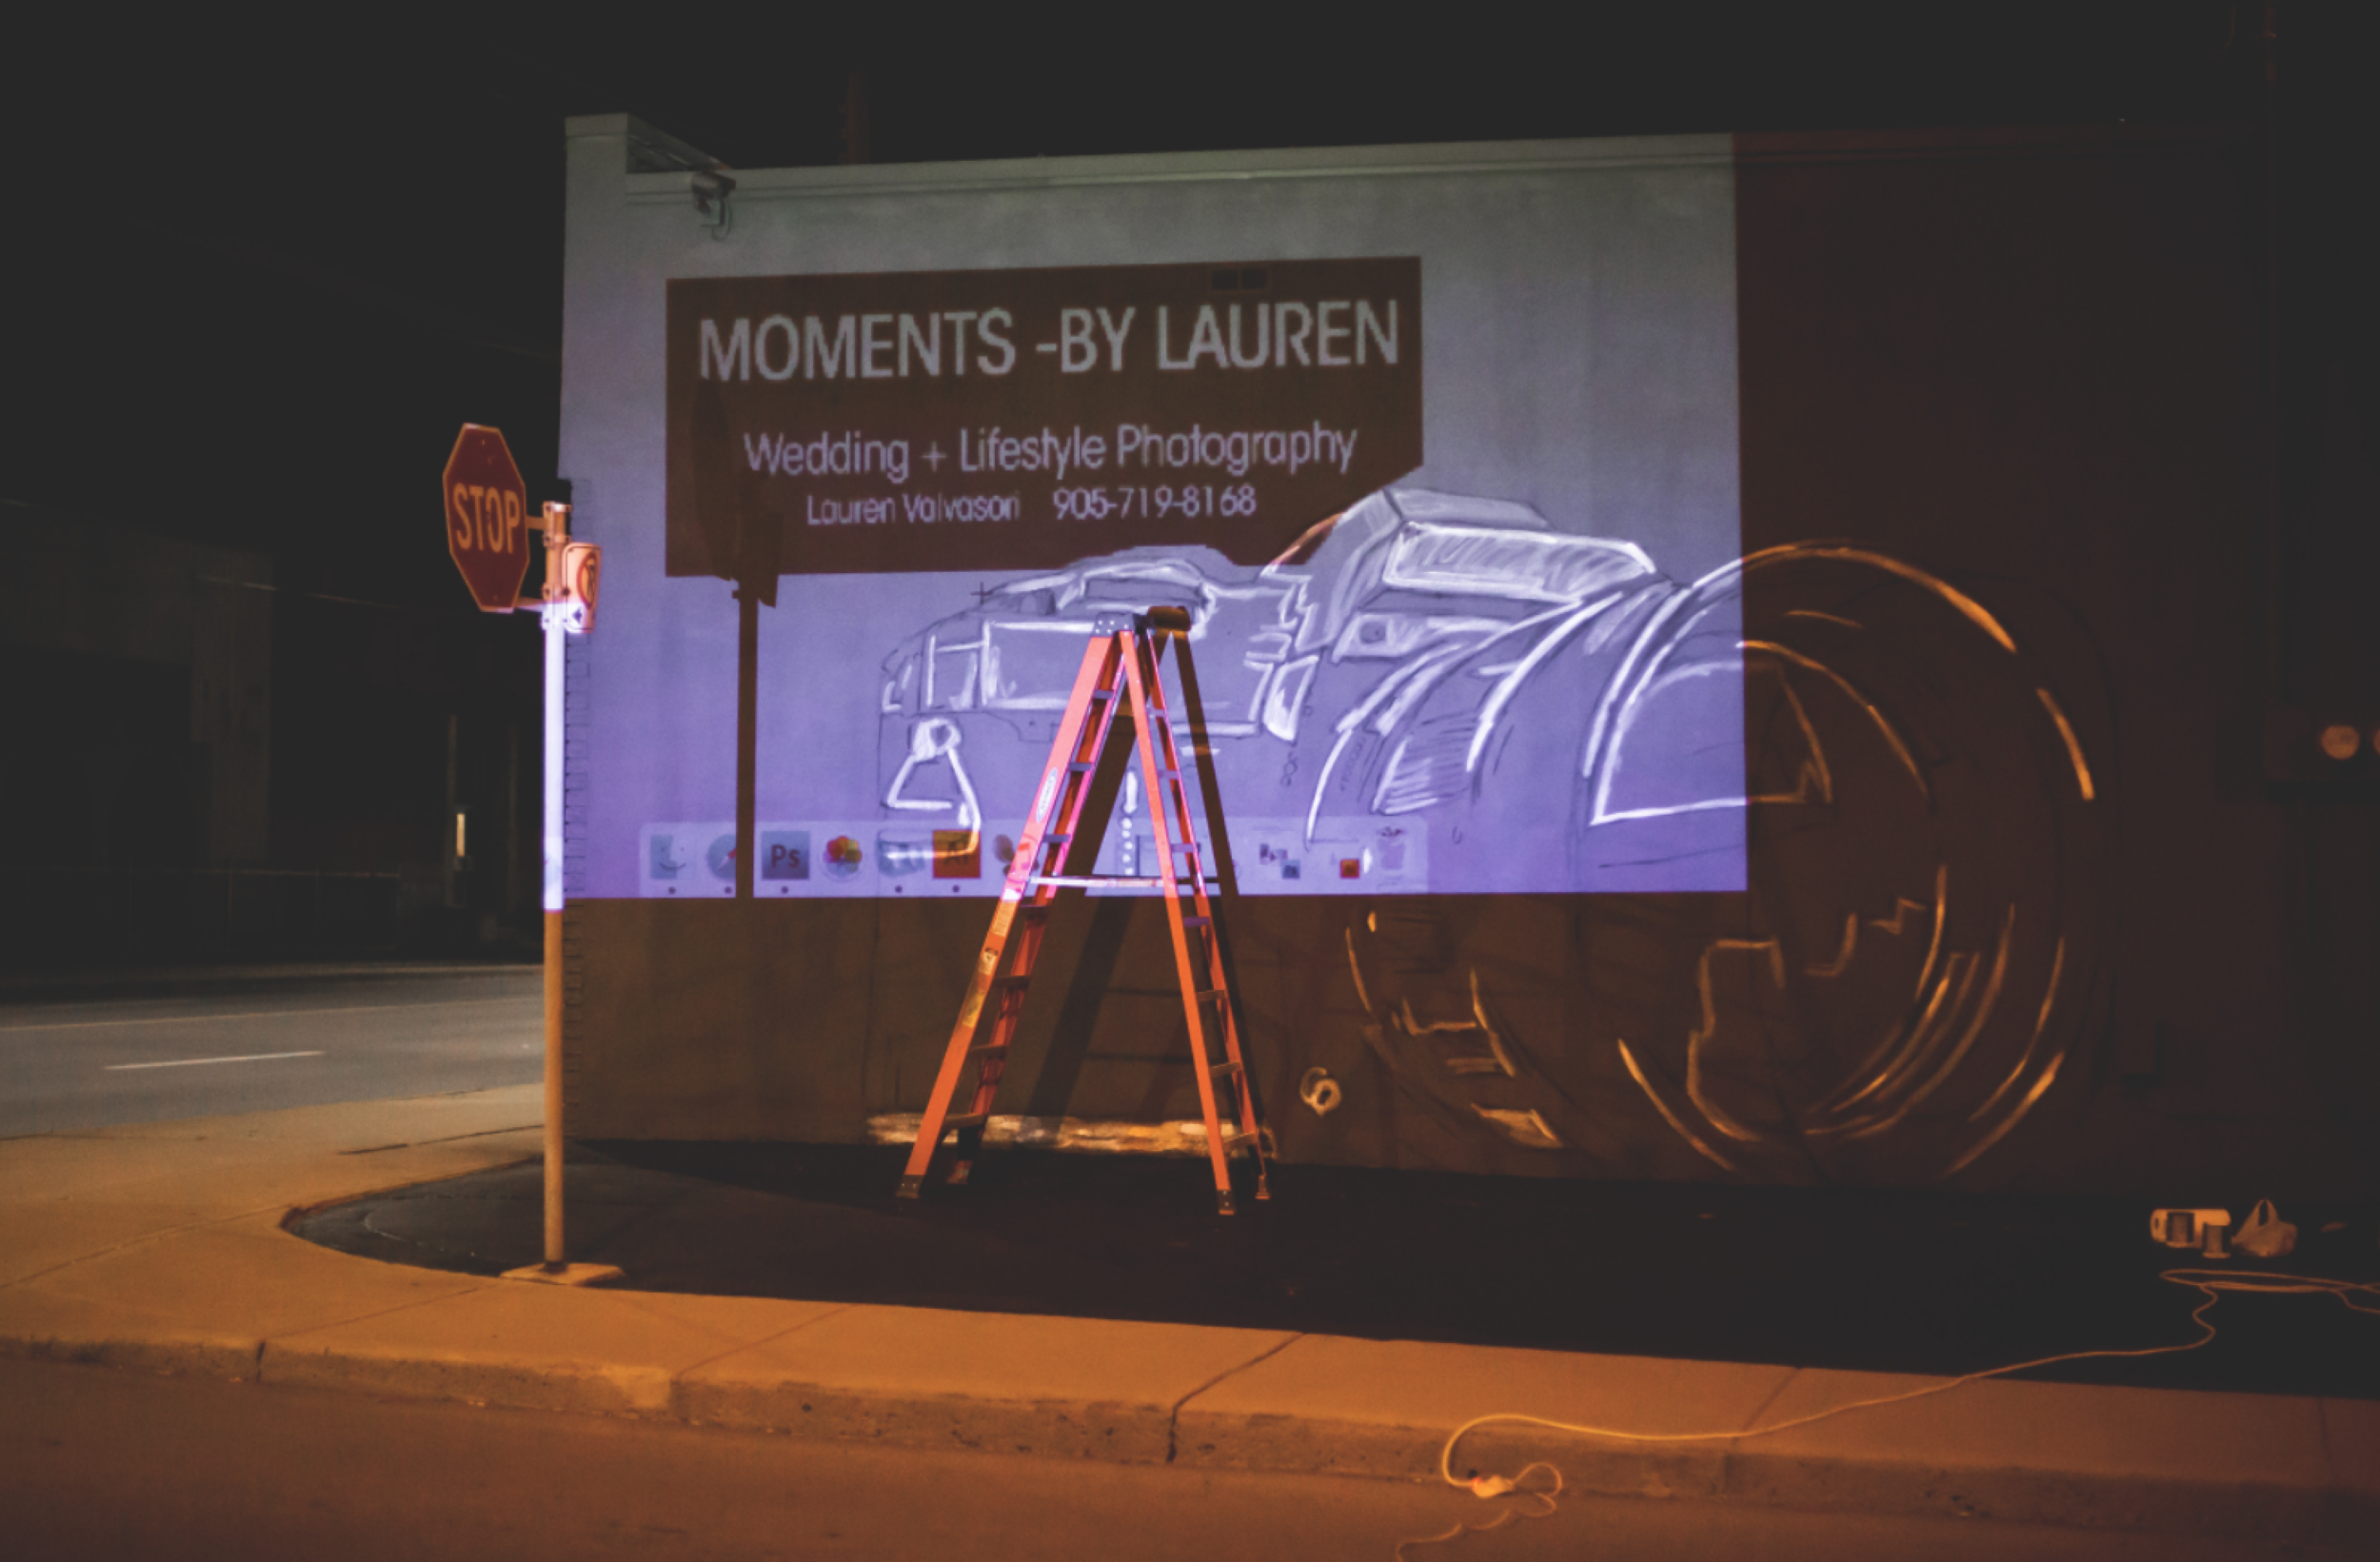 Moments-by-Lauren-Camera-Mural-Claire-Hall-Design-Photo-3.png